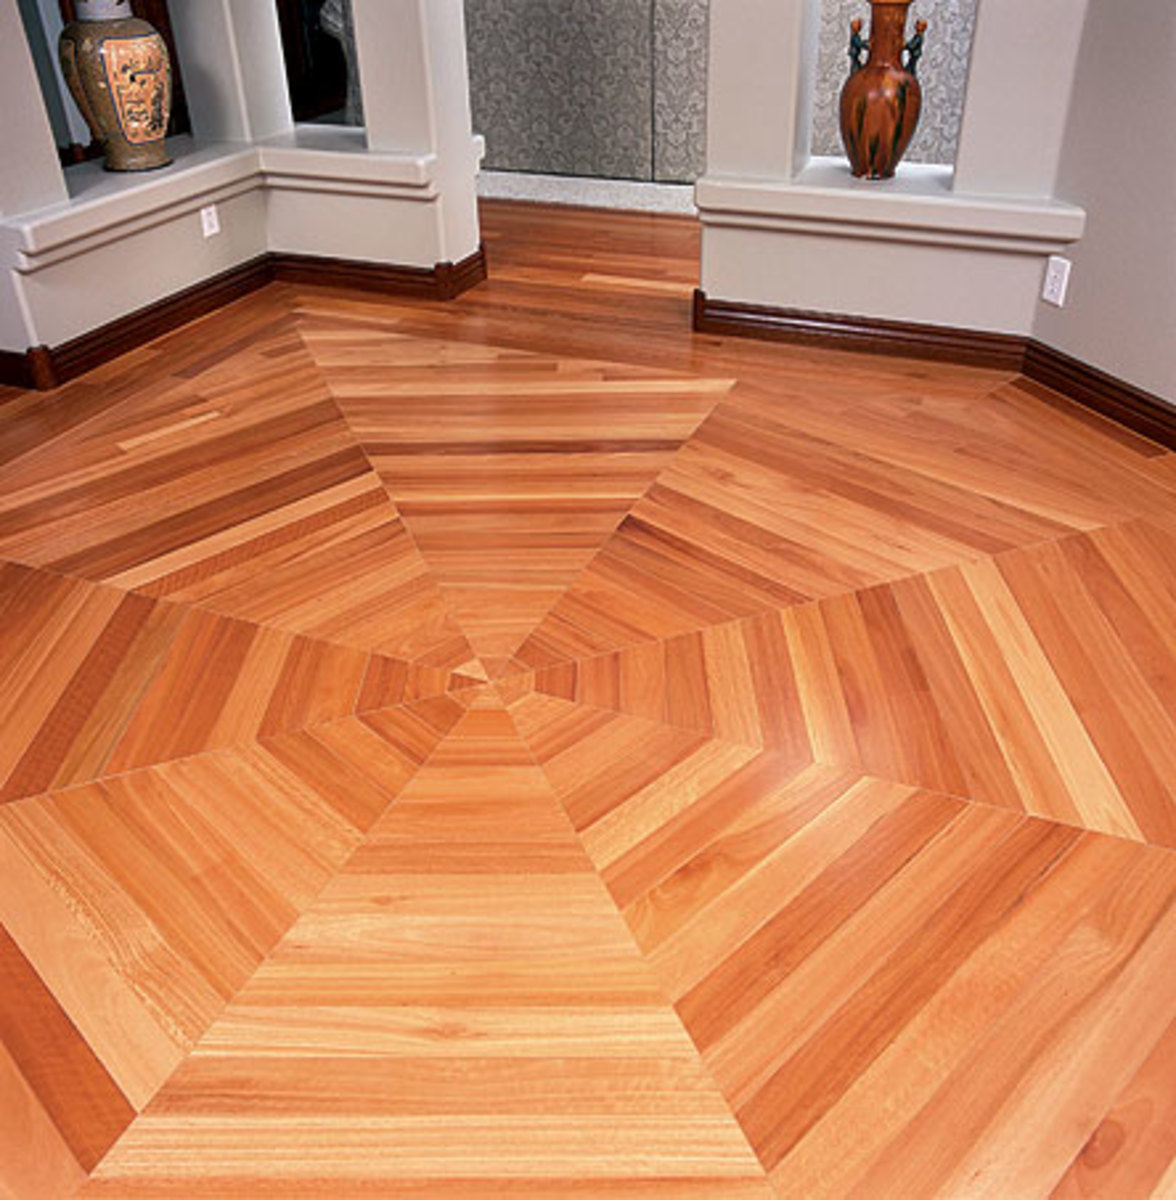 Lyptus is a recently popular species that lends itself to plank and strip floors as well as inlays.